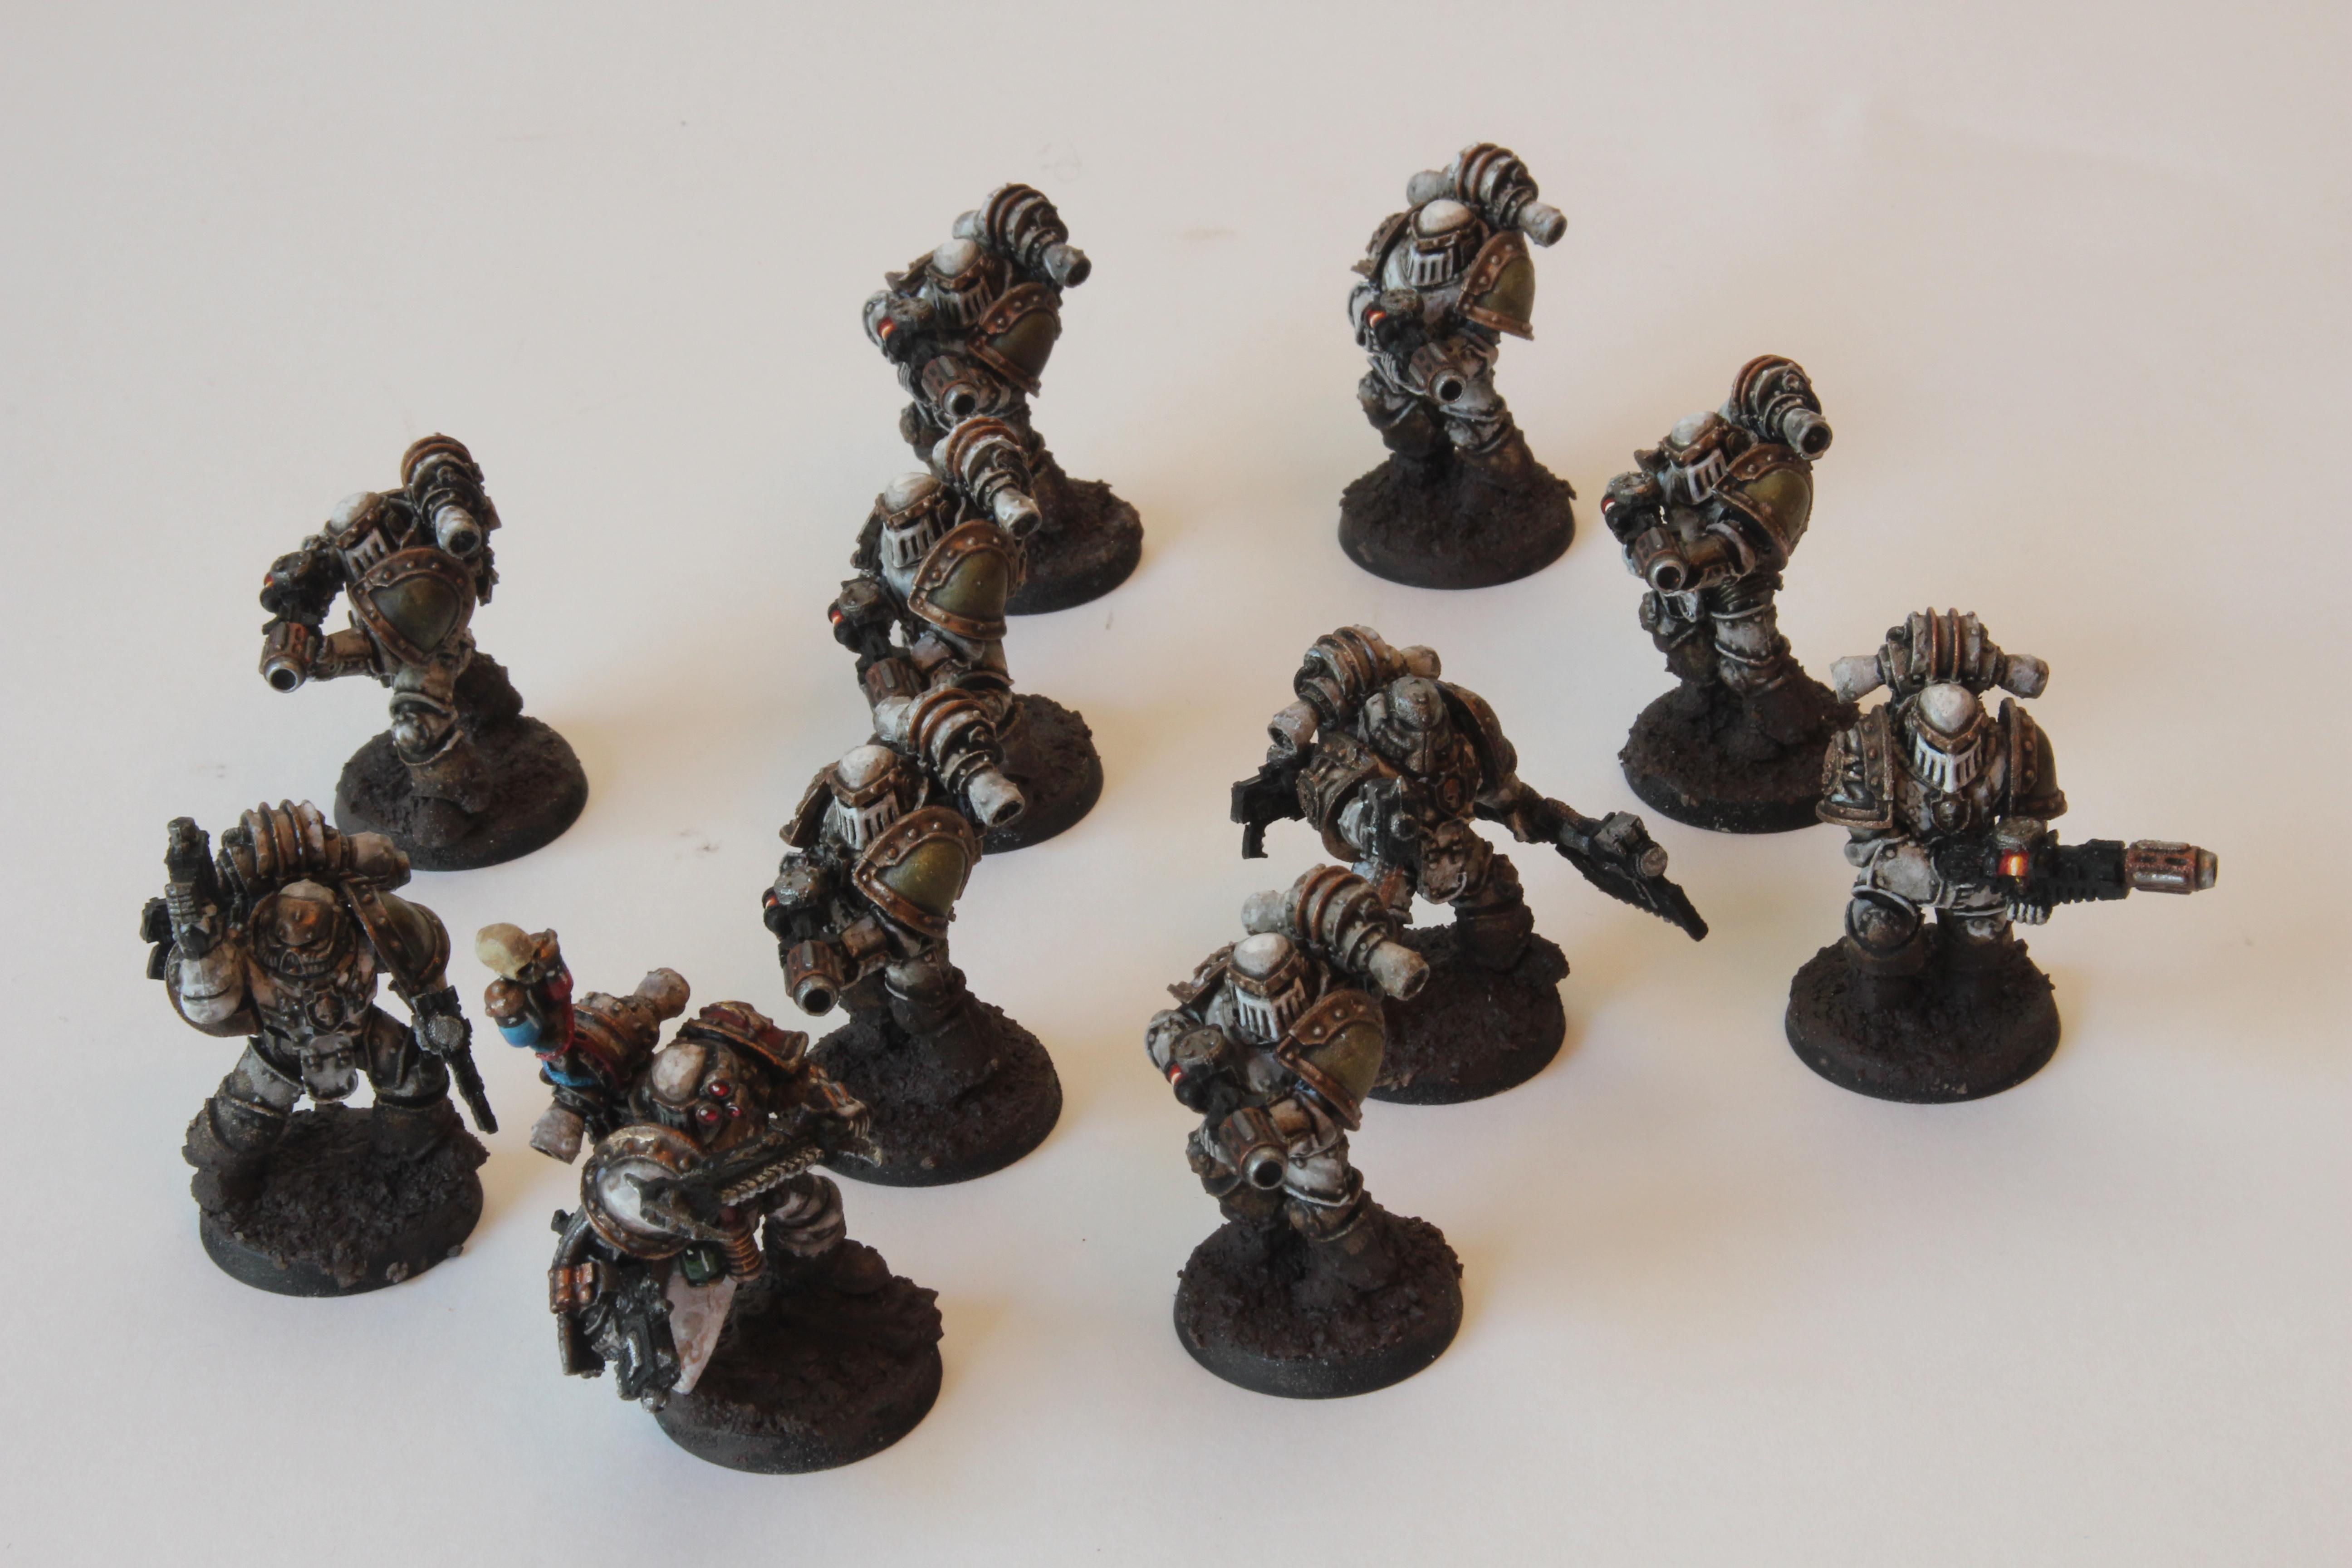 14th Legion, 30k, Death Guard, Forge World, Horus Heresy, Infantry, Melta Squad, Meltagun, Nurgle, Power Axe, Tactical Support Squad, Troops, Warhammer Fantasy